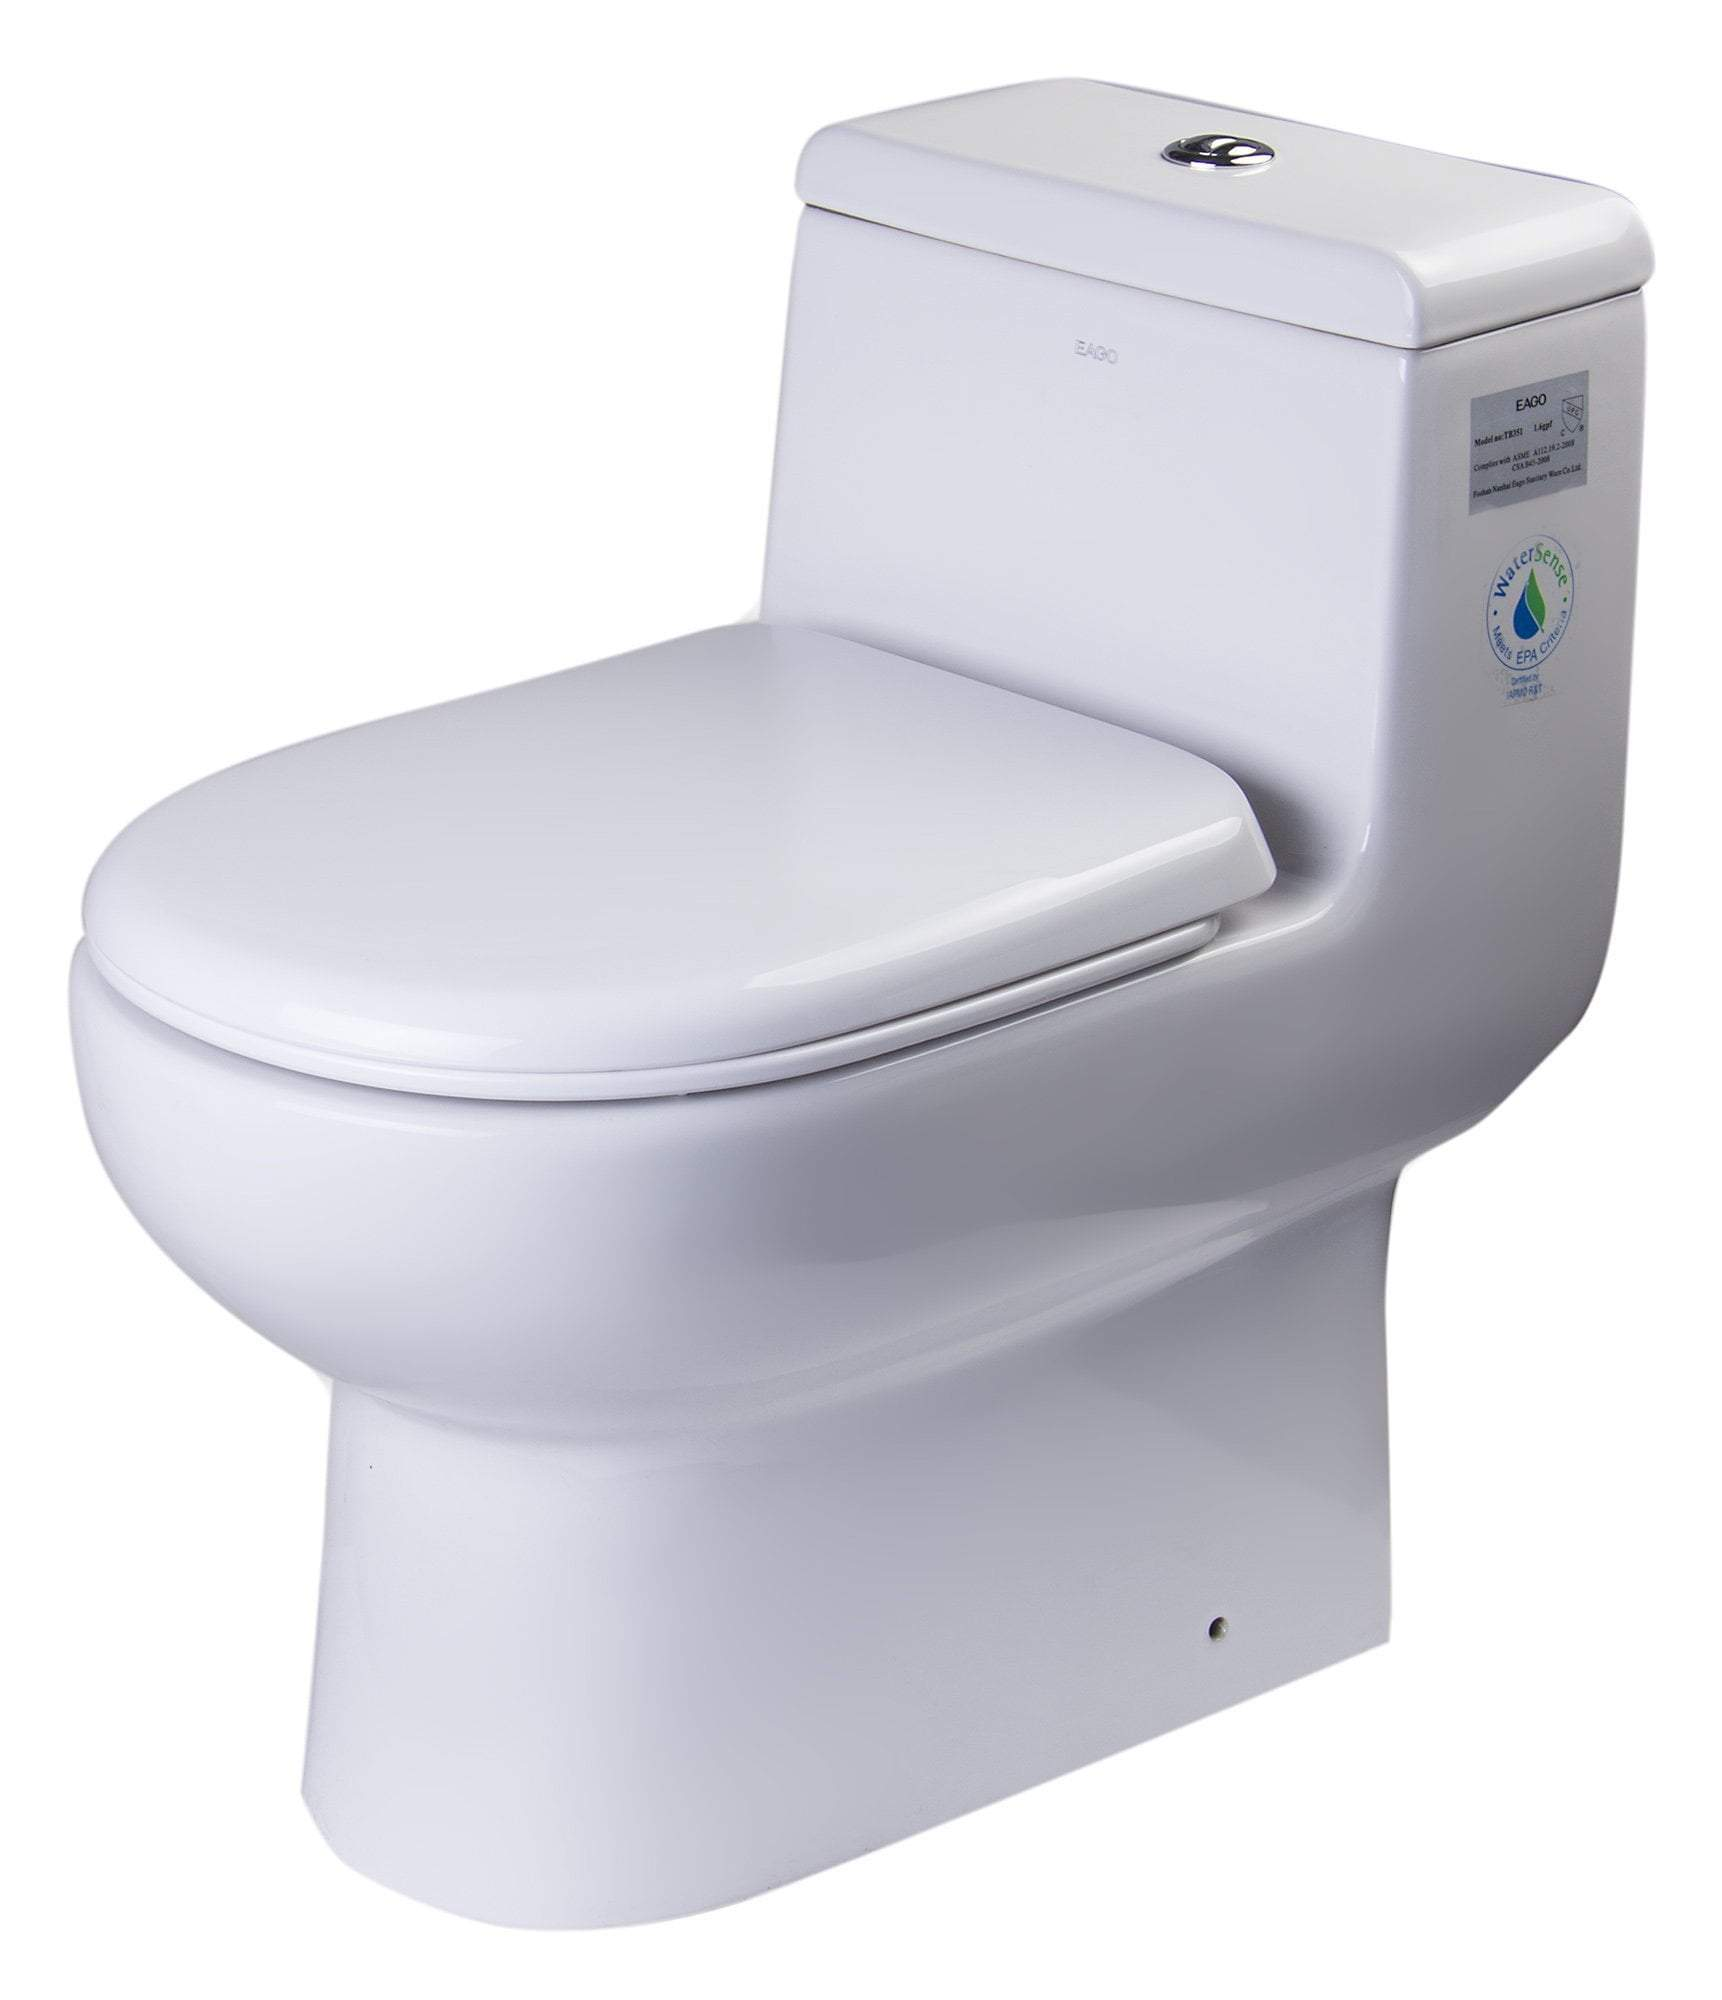 DUAL FLUSH ONE PIECE ECO-FRIENDLY HIGH EFFICIENCY LOW FLUSH CERAMIC TOILET